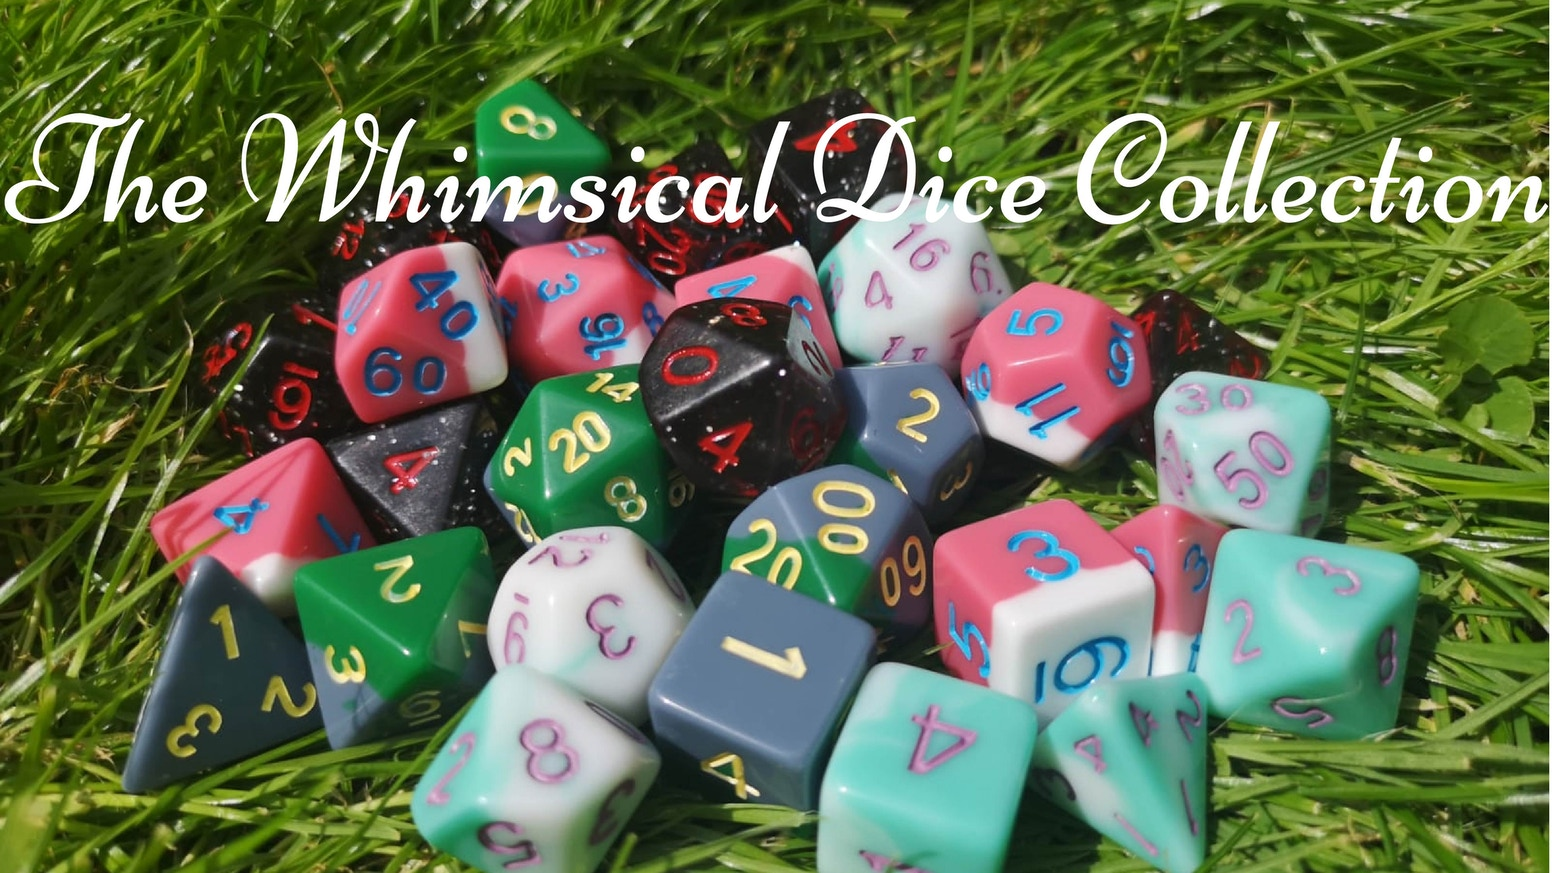 A set of 5 dice designs inspired by adventures in Japanese animated films